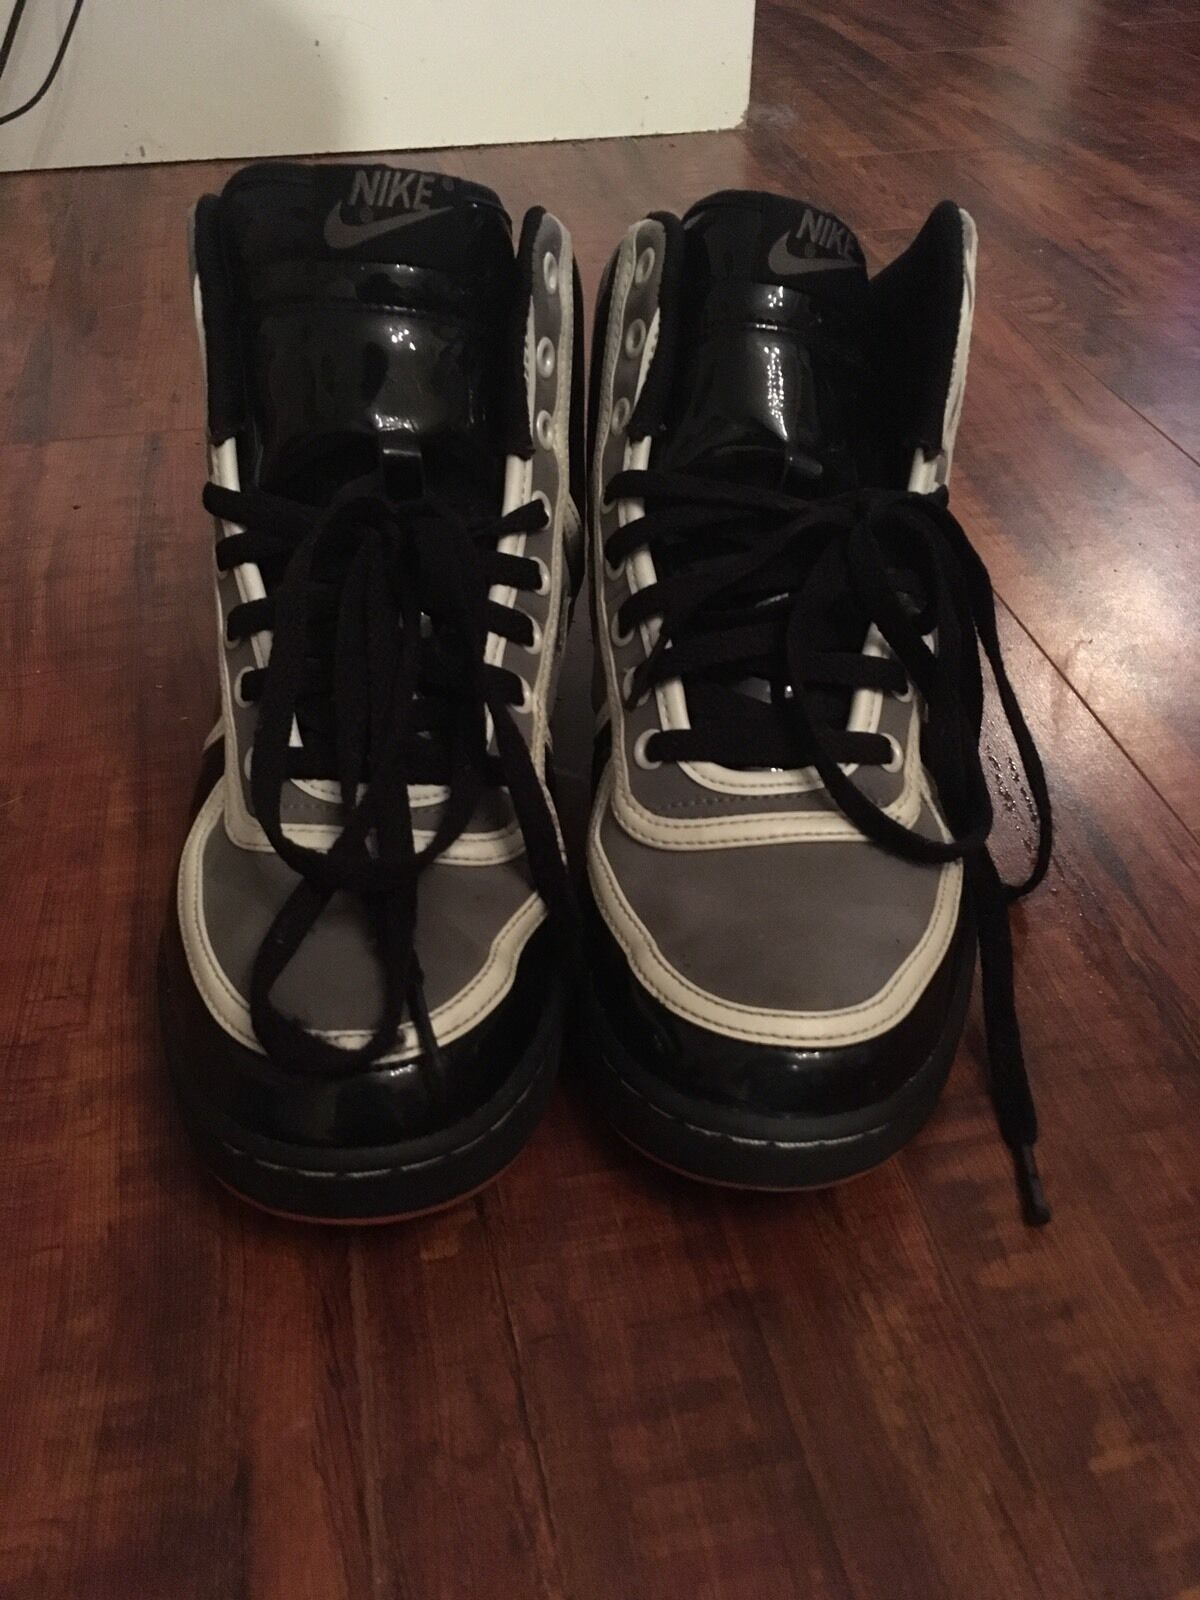 Men's  Nike High Tops Black/Grey/White 7.5 Athletic Shoes